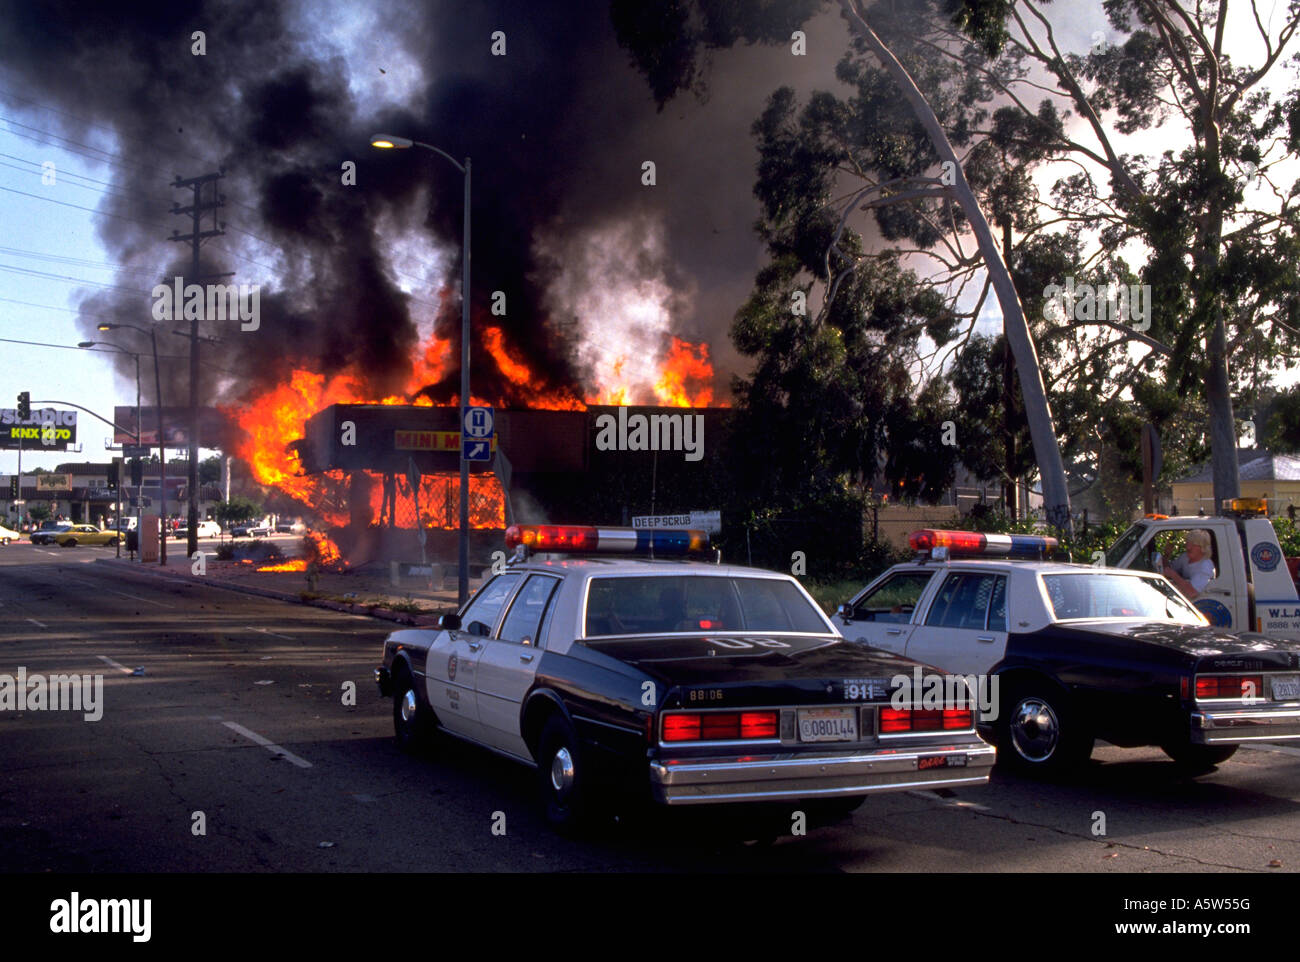 Painet hl0986 scene los angeles riots 1992 california destruction fire flames burning building police cars smoke - Stock Image